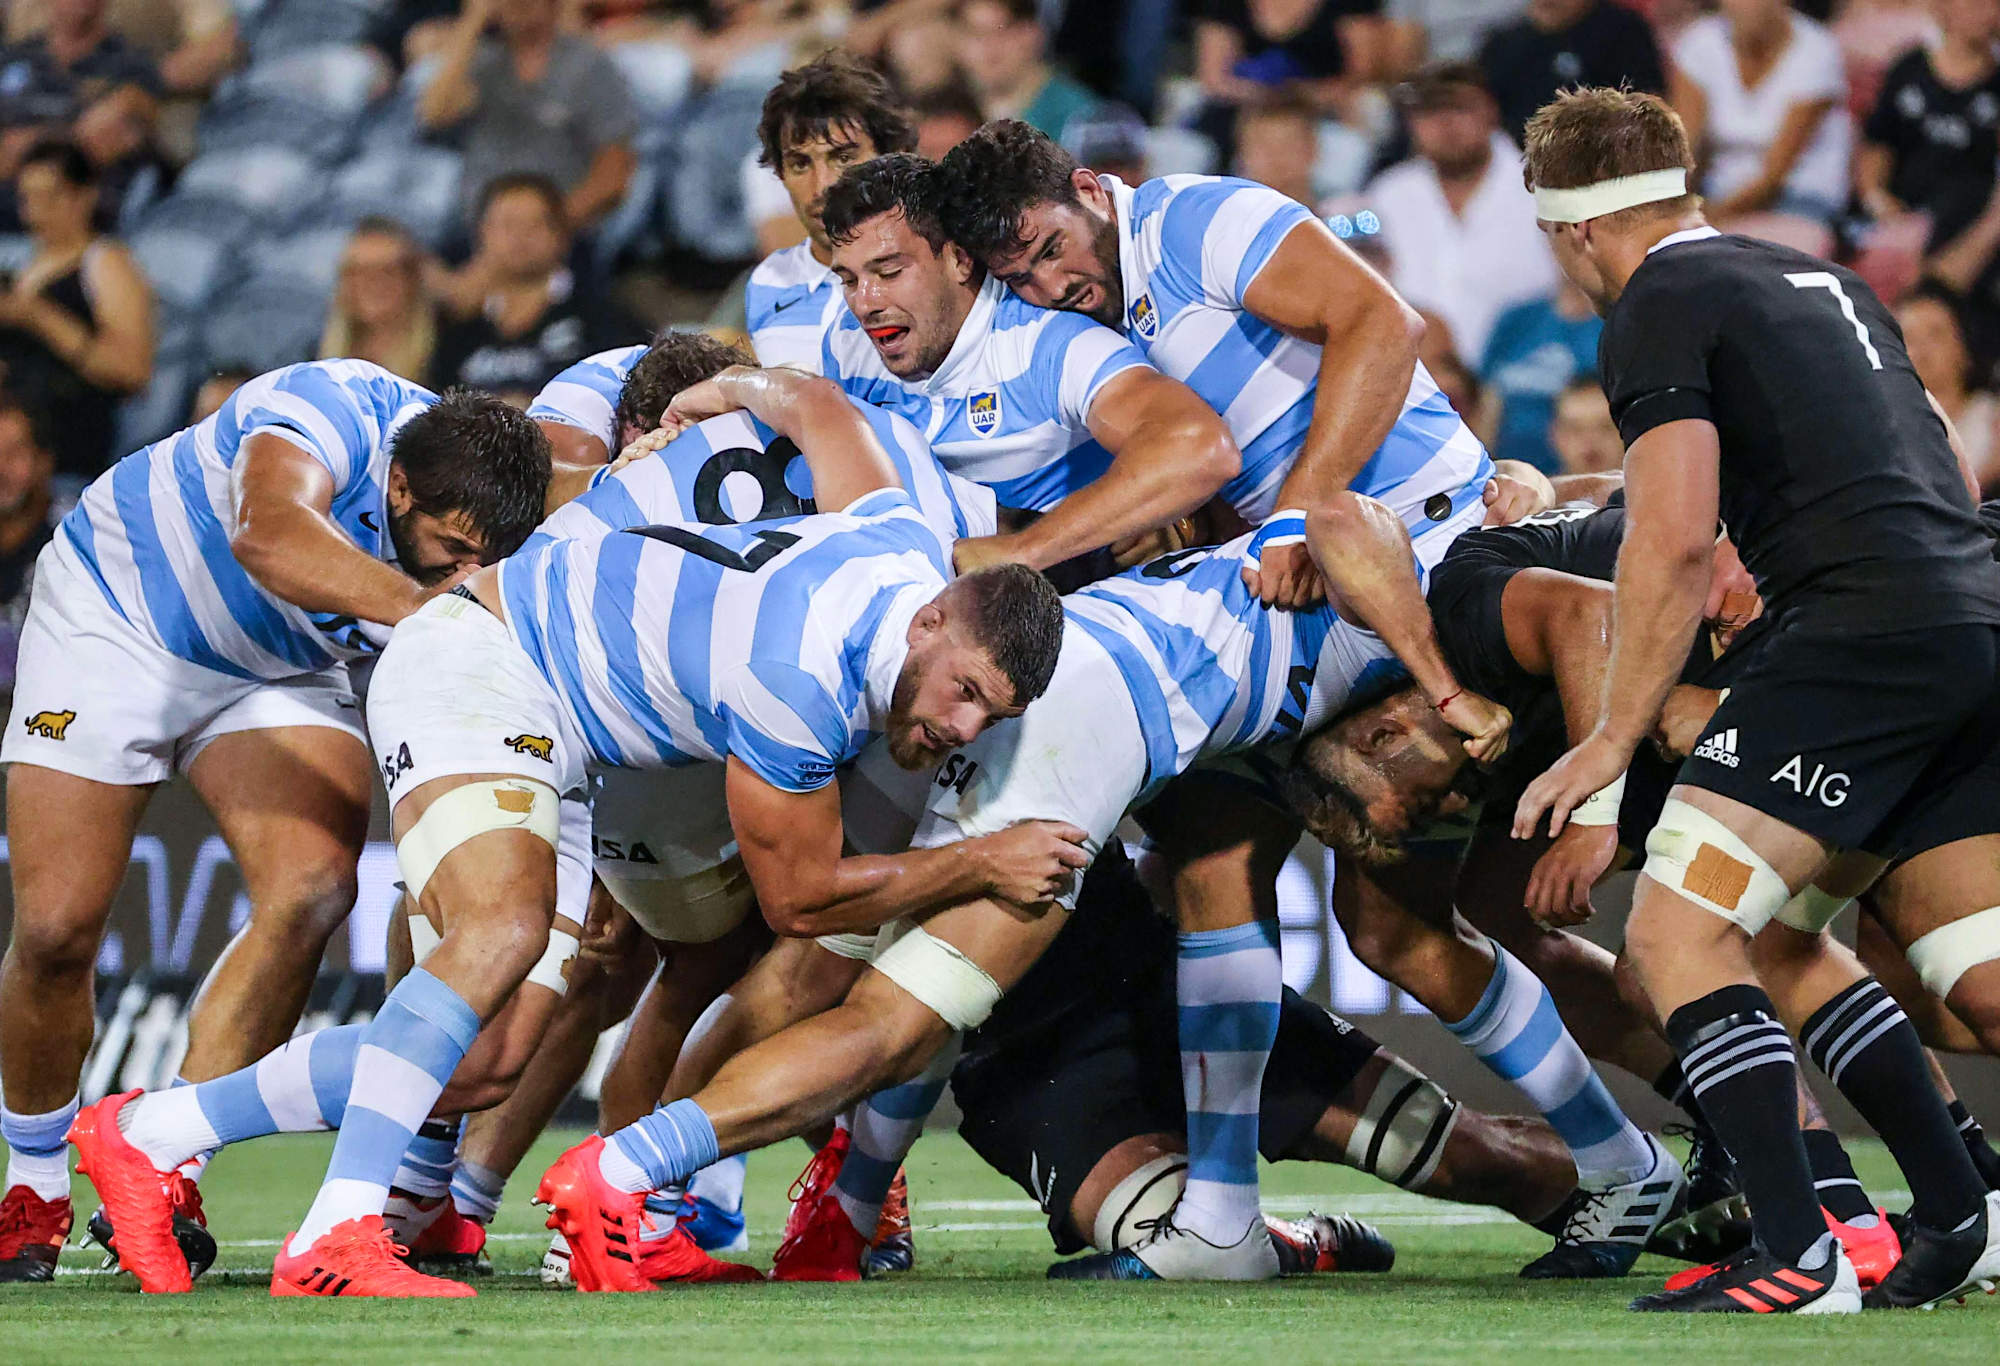 Argentina players push against New Zealand players in a maul